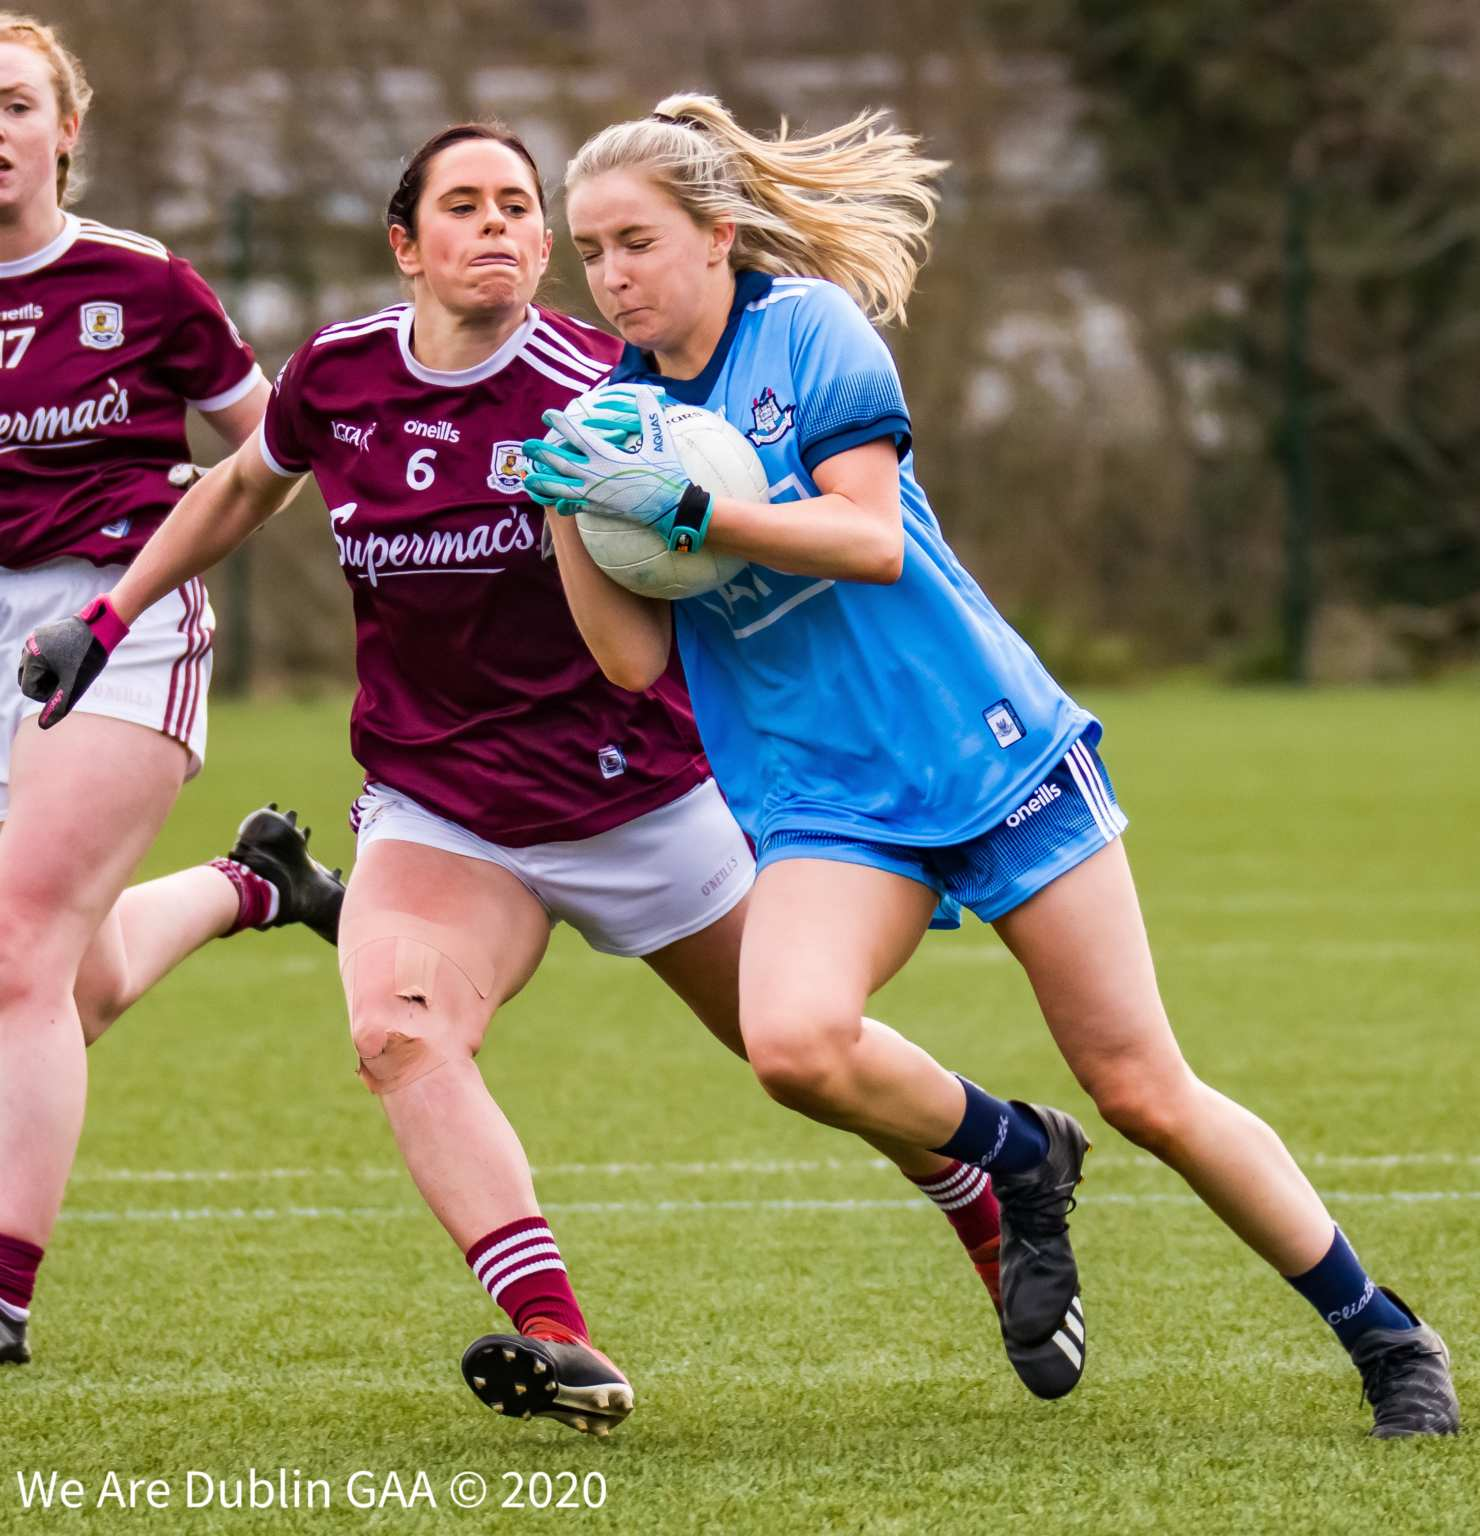 A Dublin ladies footballers is tackled by a Galway player, Dublin get their Leinster U14 and U16 Championship underway this weekend.